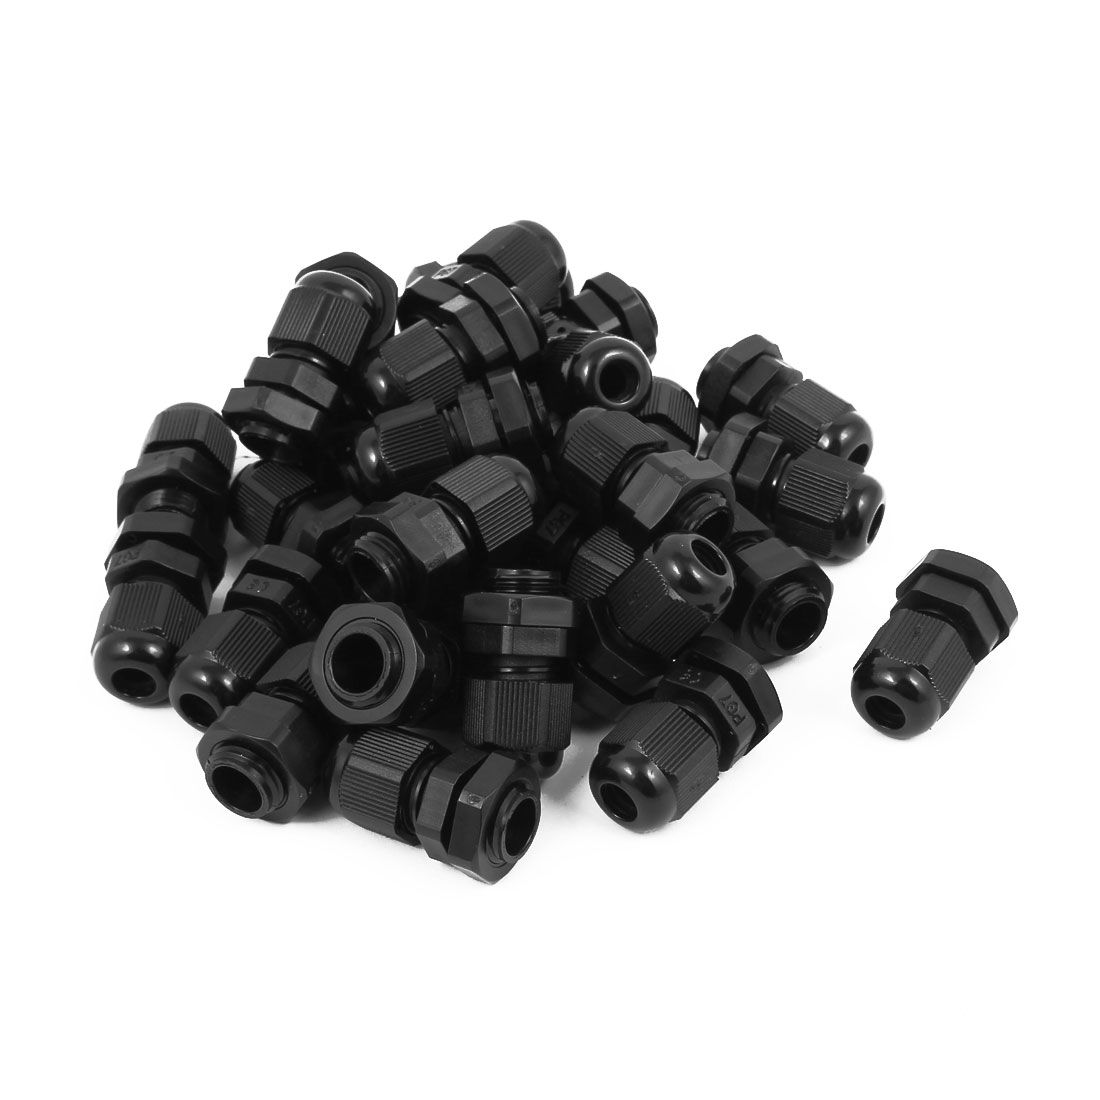 PG7 Waterproof IP68 Safety Nylon Cable Gland Connector Joints Black 30pcs